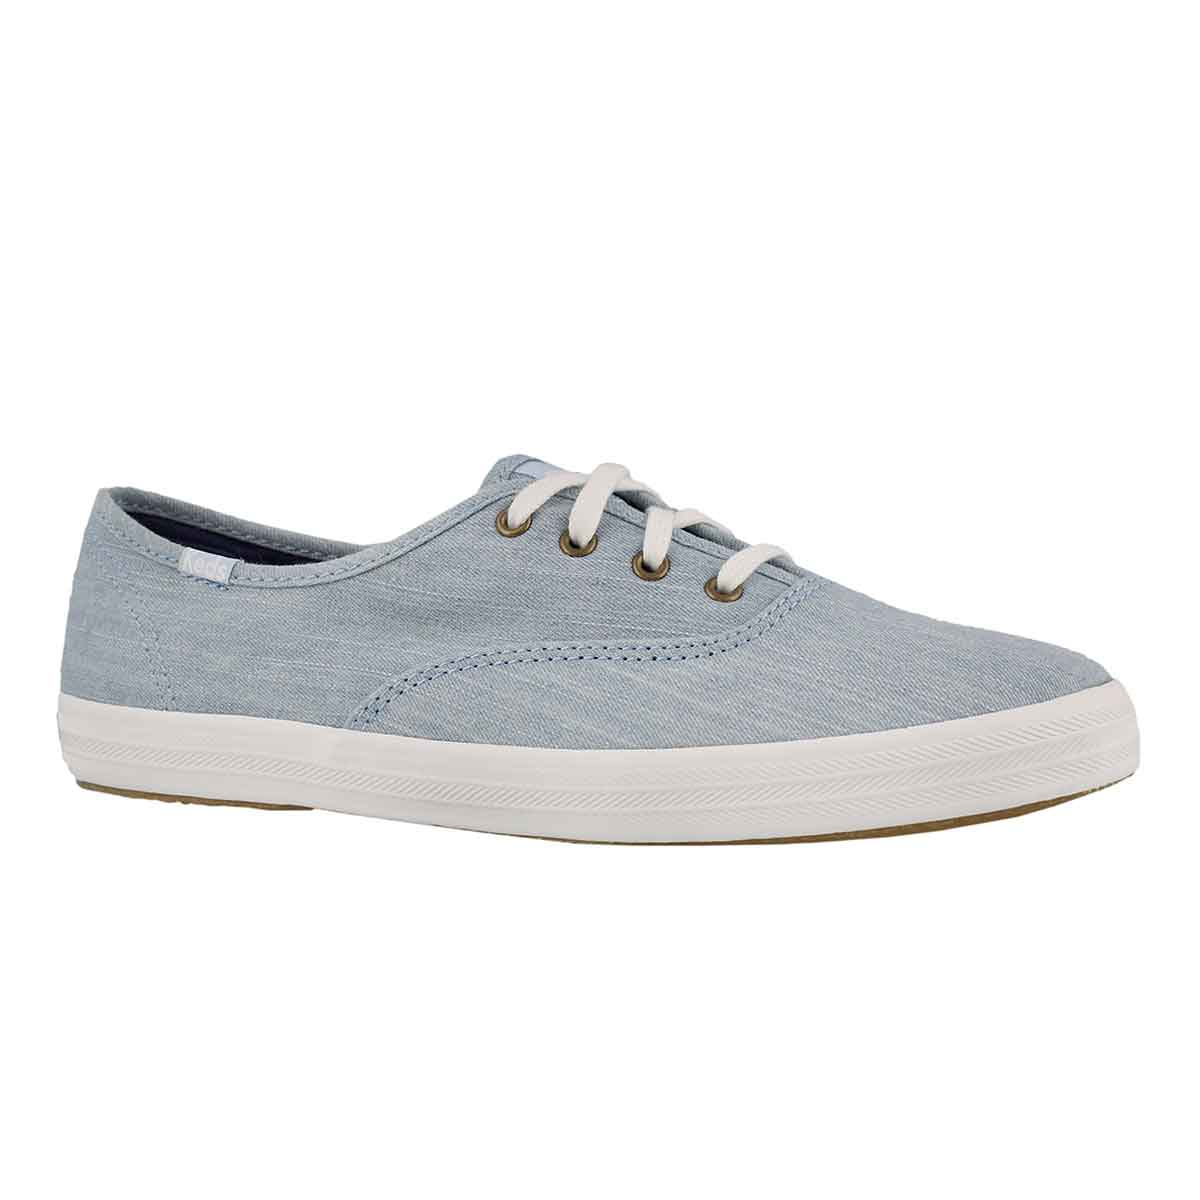 Women's CHAMPION seasonal light blue CVO sneaker